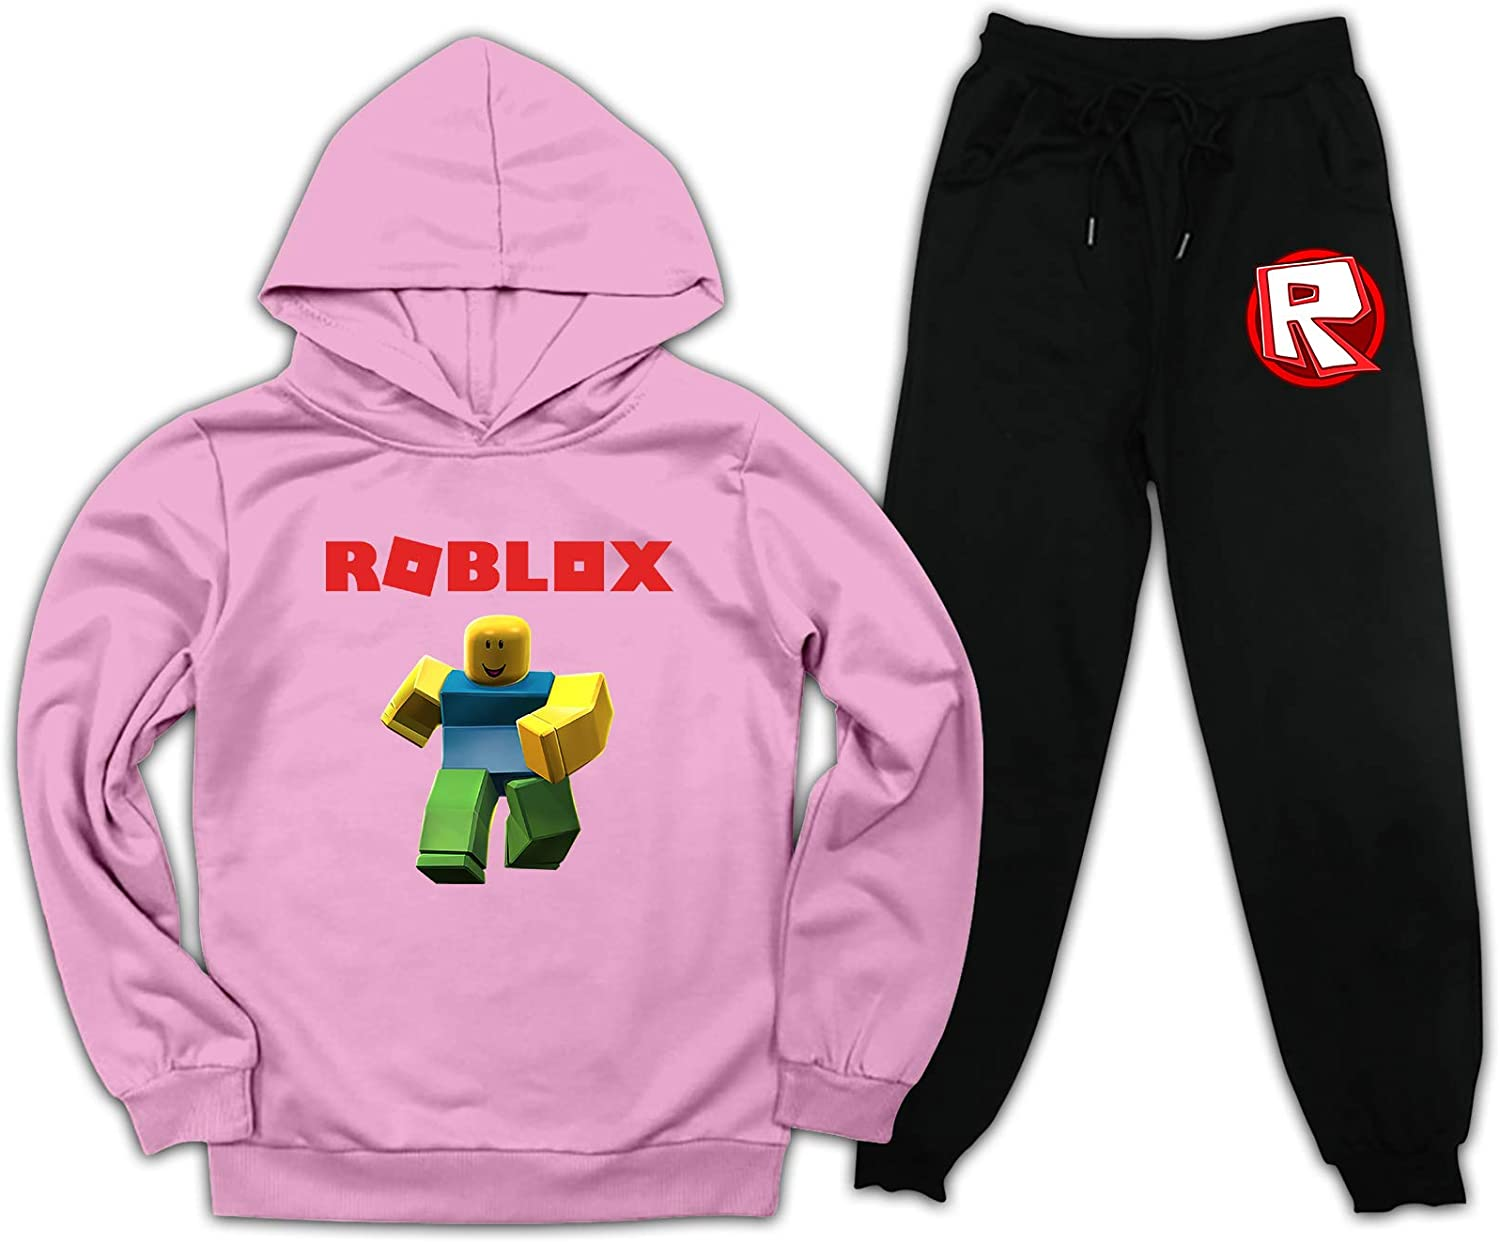 Boys Girls TIK-Tok Pullover Hoodie and Sweatpants Set for Kids 2 Piece Outfit Fashion Jogging Suits